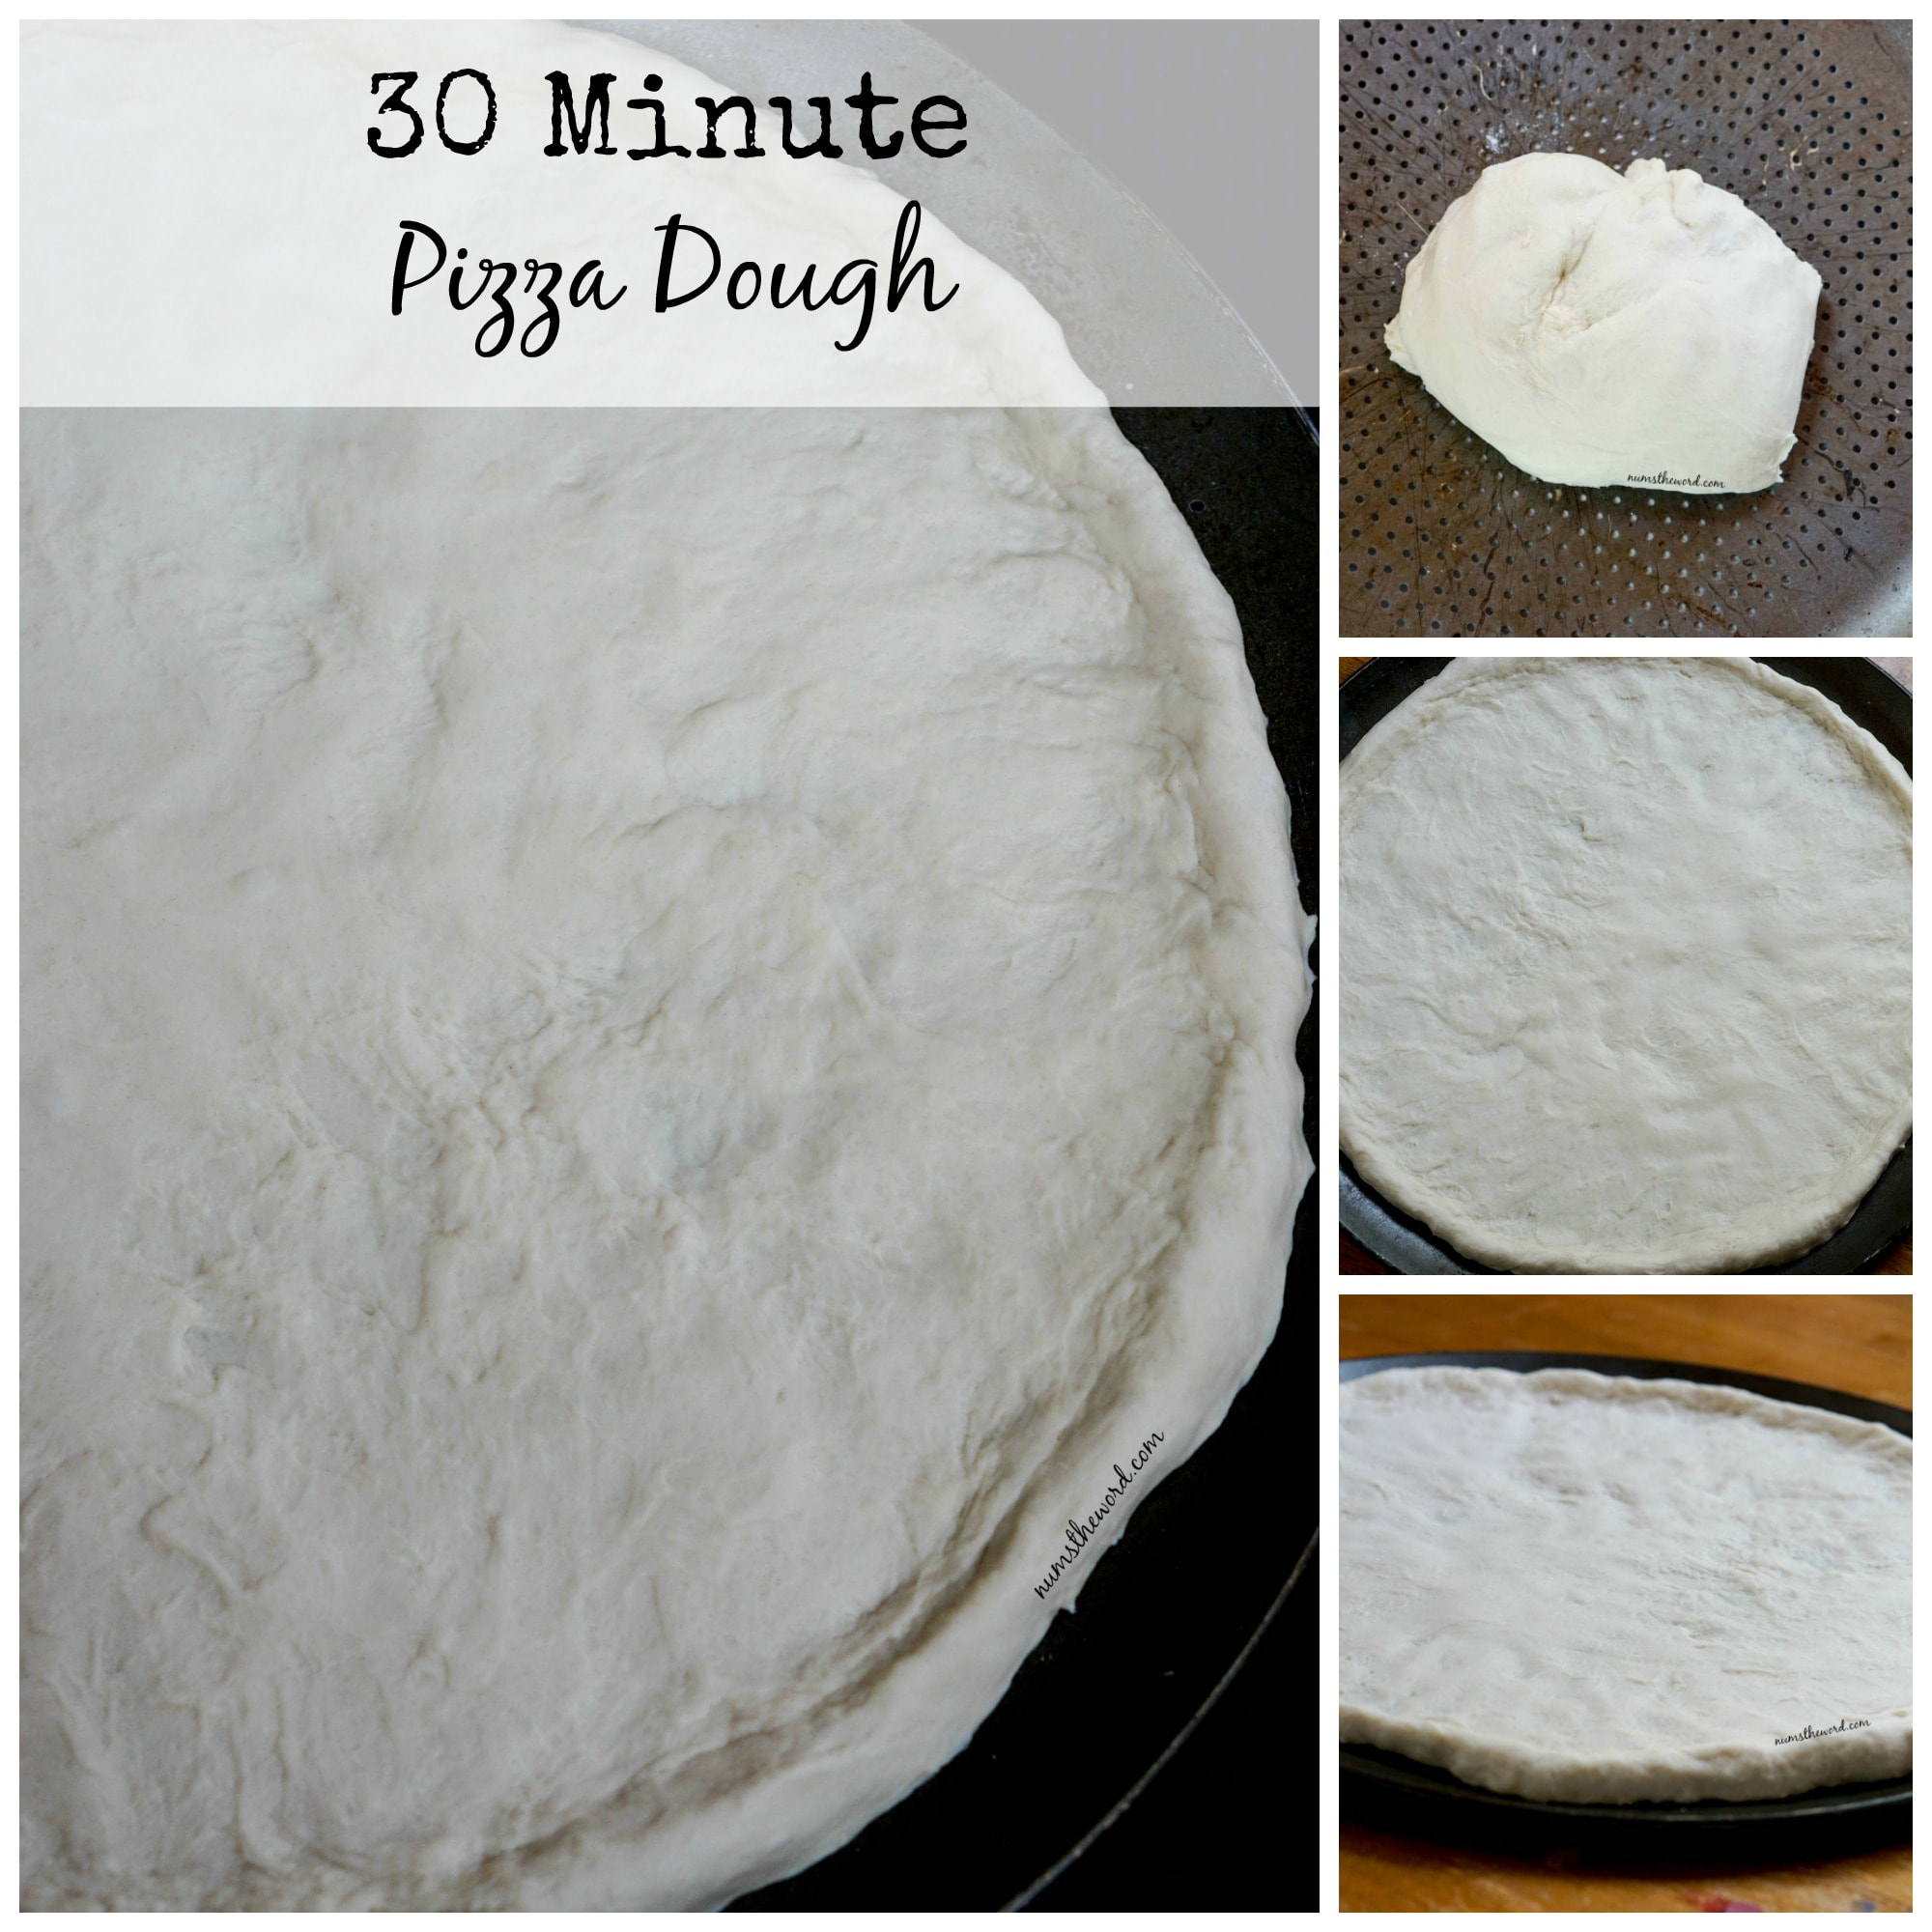 30 Minute Pizza Dough